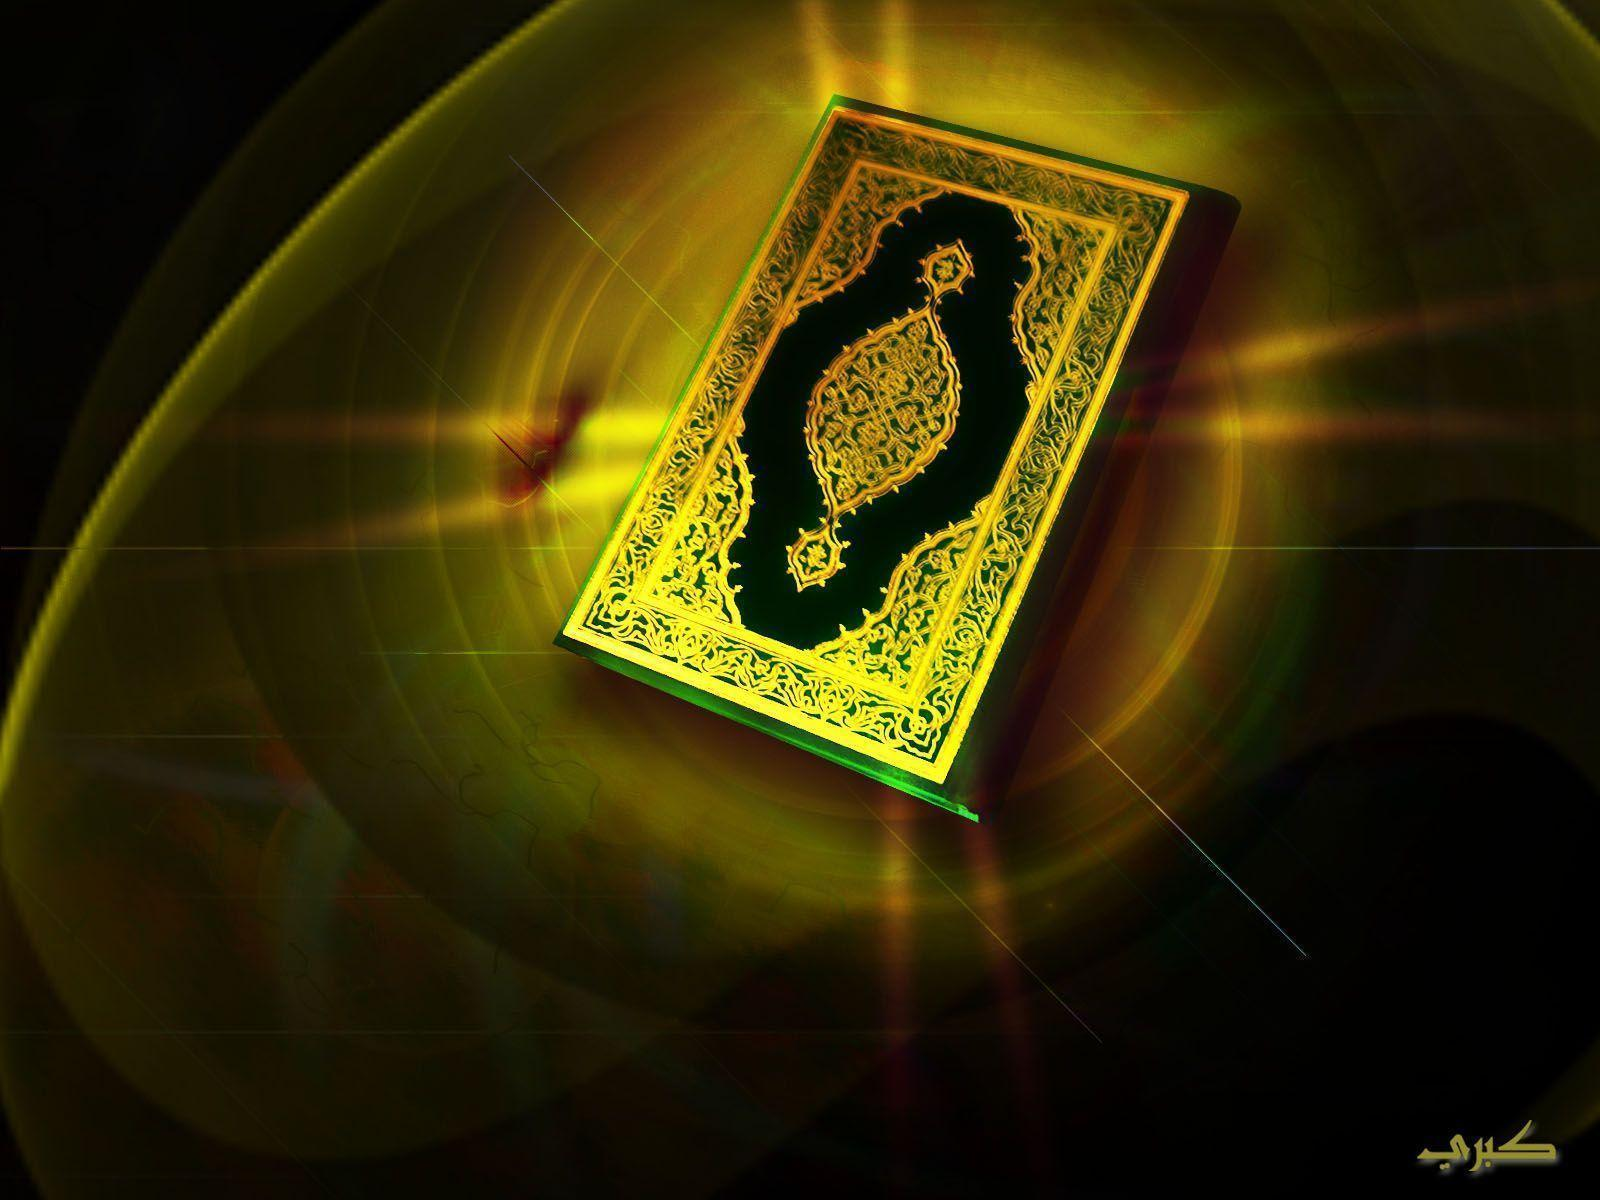 wallpapers with holy quran - photo #1